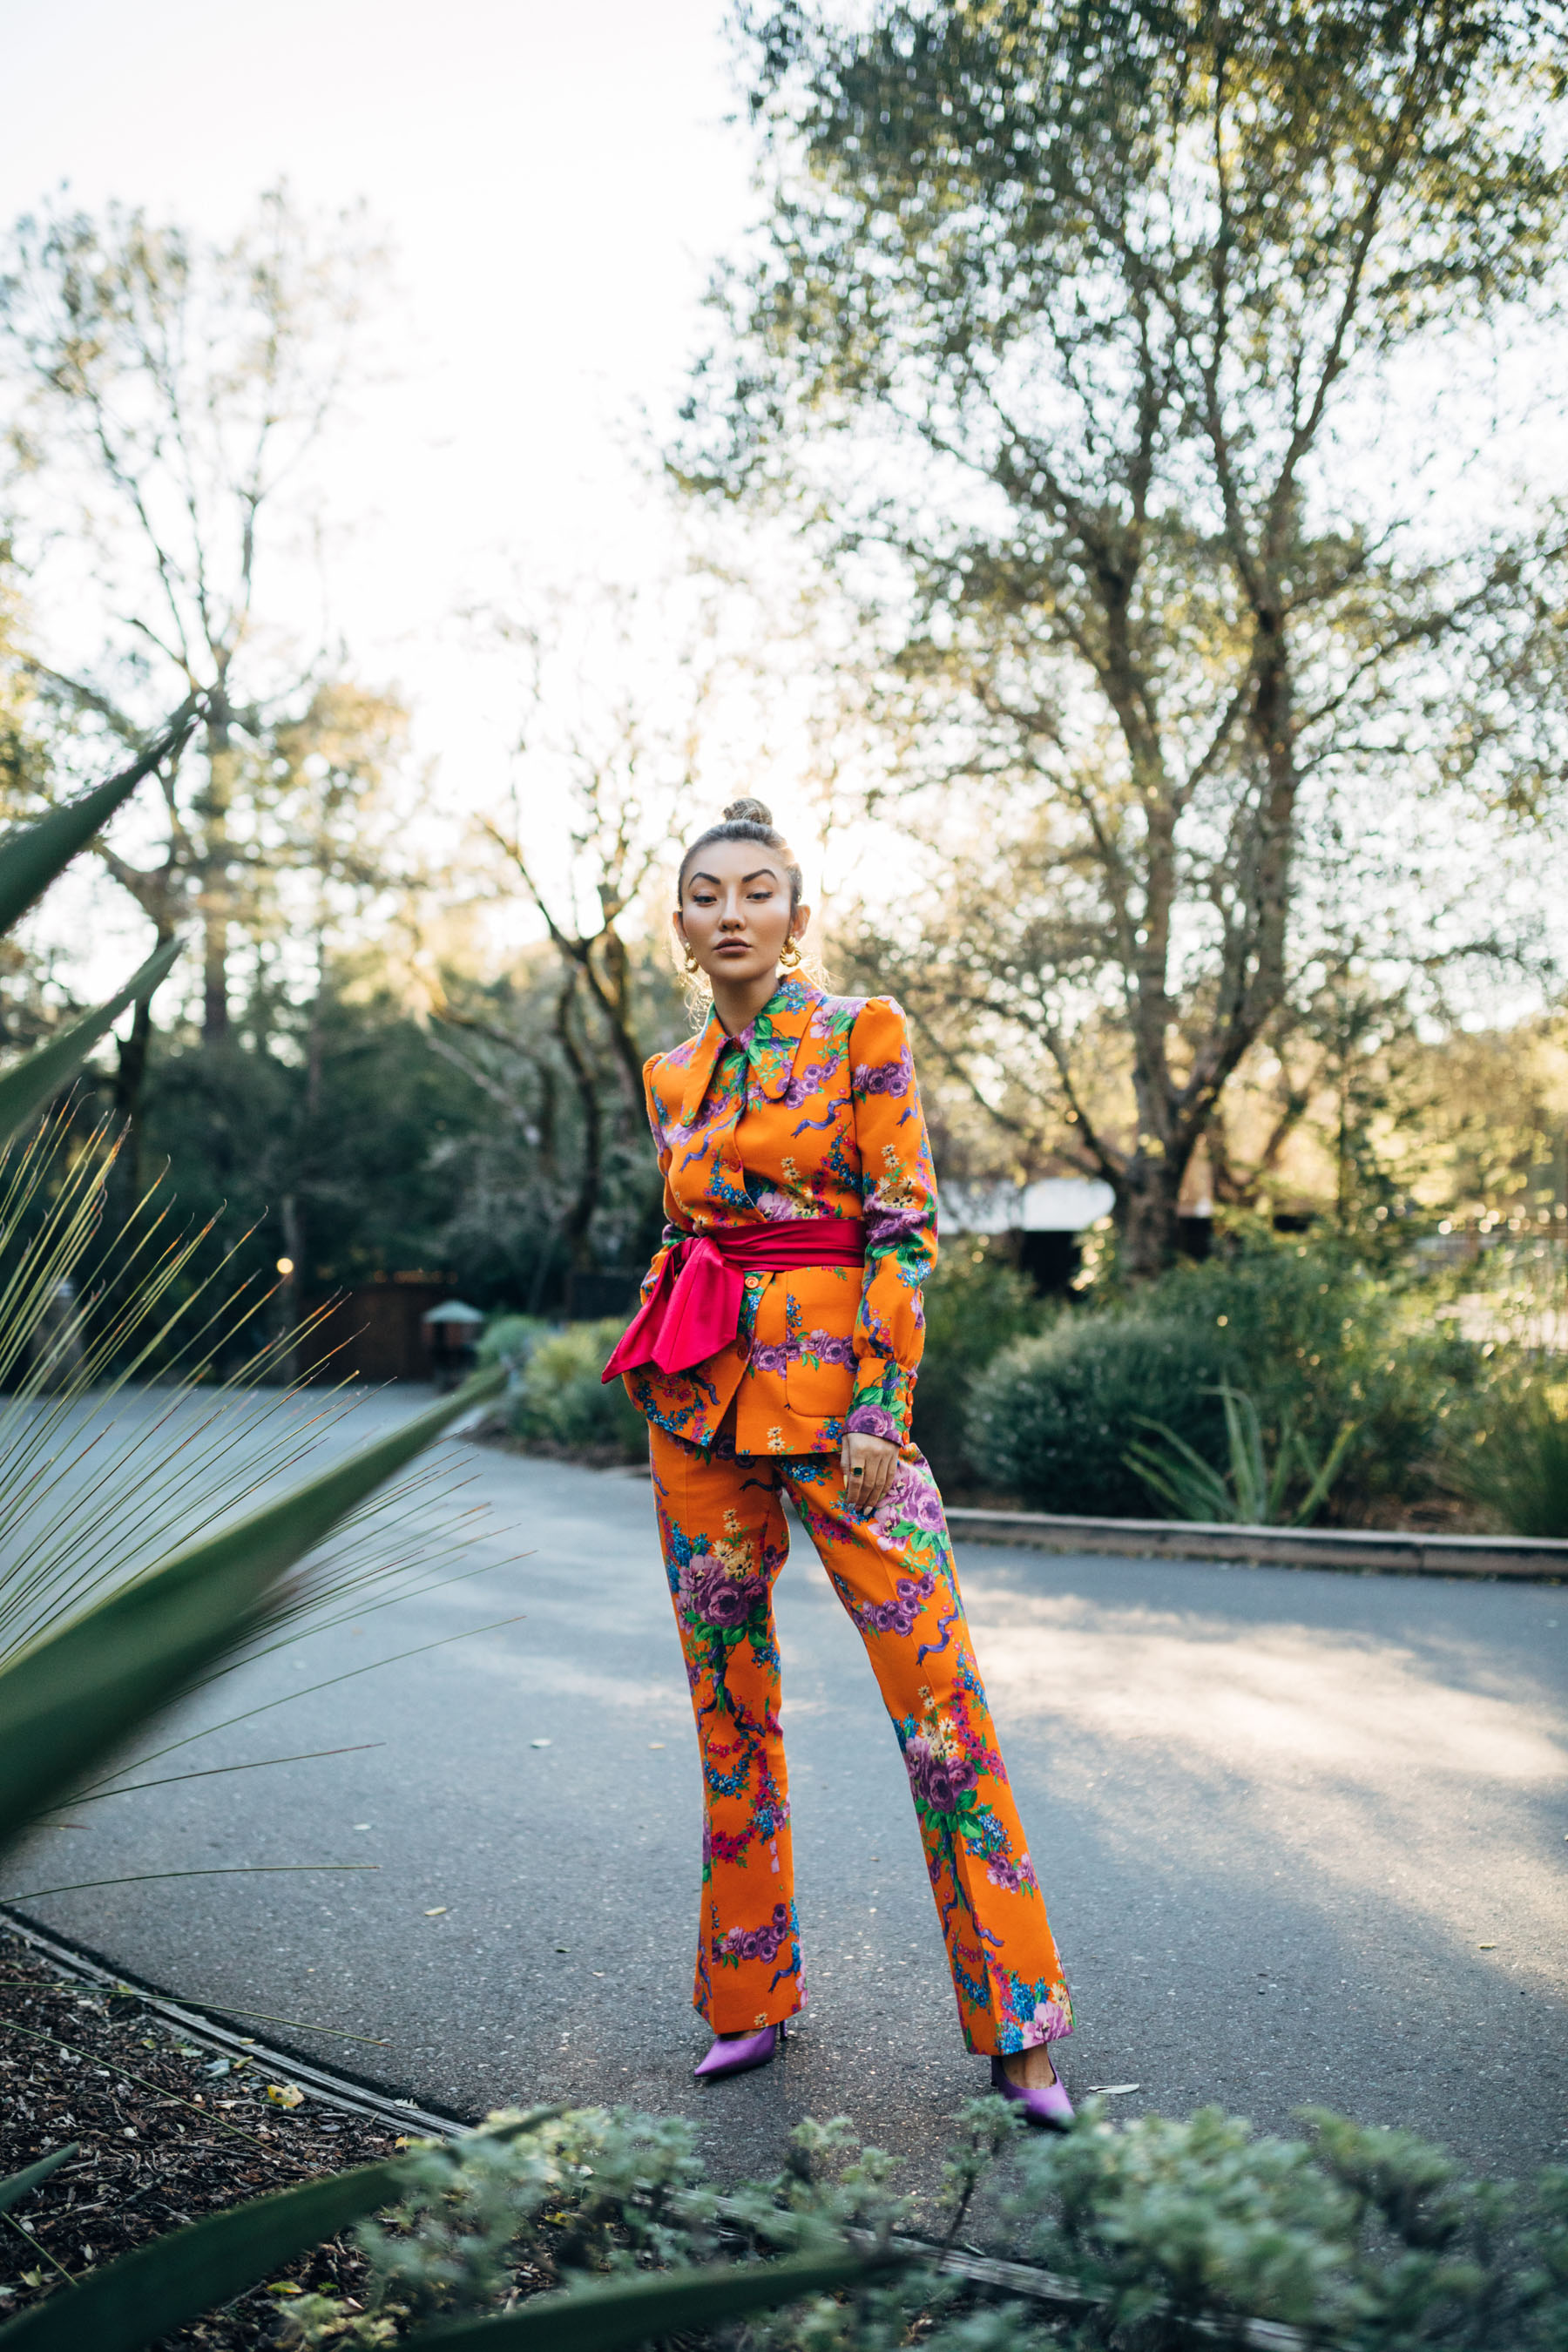 neon trend, full neon outfit, neon outfit inspiration, neon fashion, neon suit // Notjessfashion.com